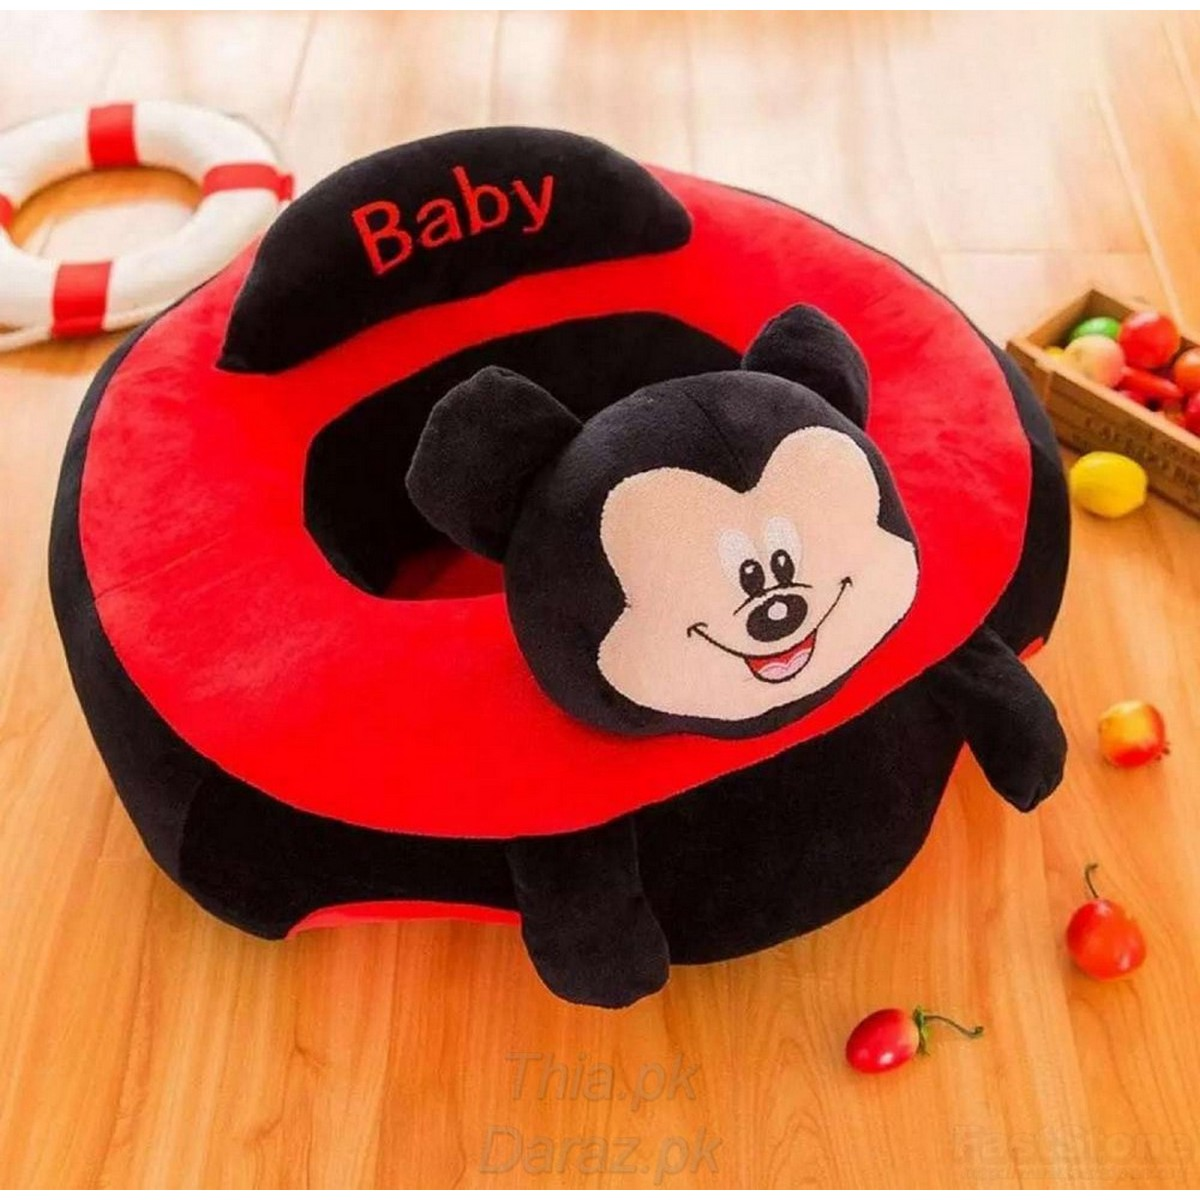 Best Quality Mickey Mouse Black Red Stuffed Plush Sofa Baby Seats Children Sofa Support Seat Learning Training Cushion Baby Carrier Seater Toddler Nest Puff Cartoon Minnie Mouse Chair Soft Babies Toys with 2 Holes for Legs For 3 - 12 Months(Black Red)